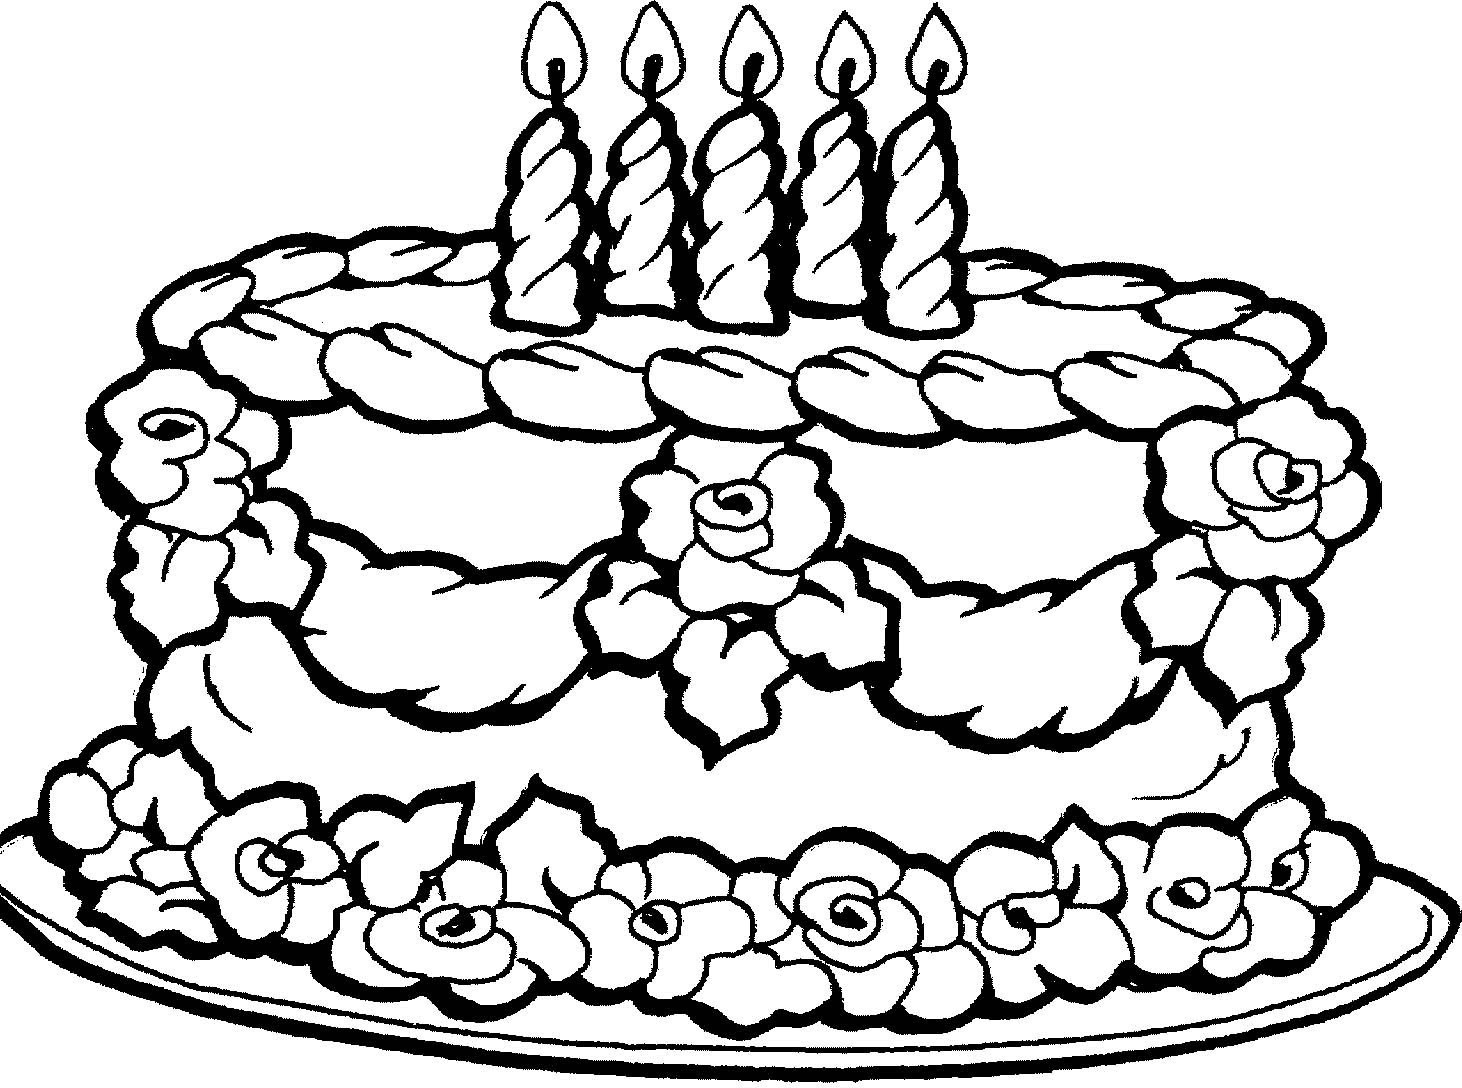 1462x1088 Shopkins Birthday Cake Coloring Page Free Shopkins Coloring